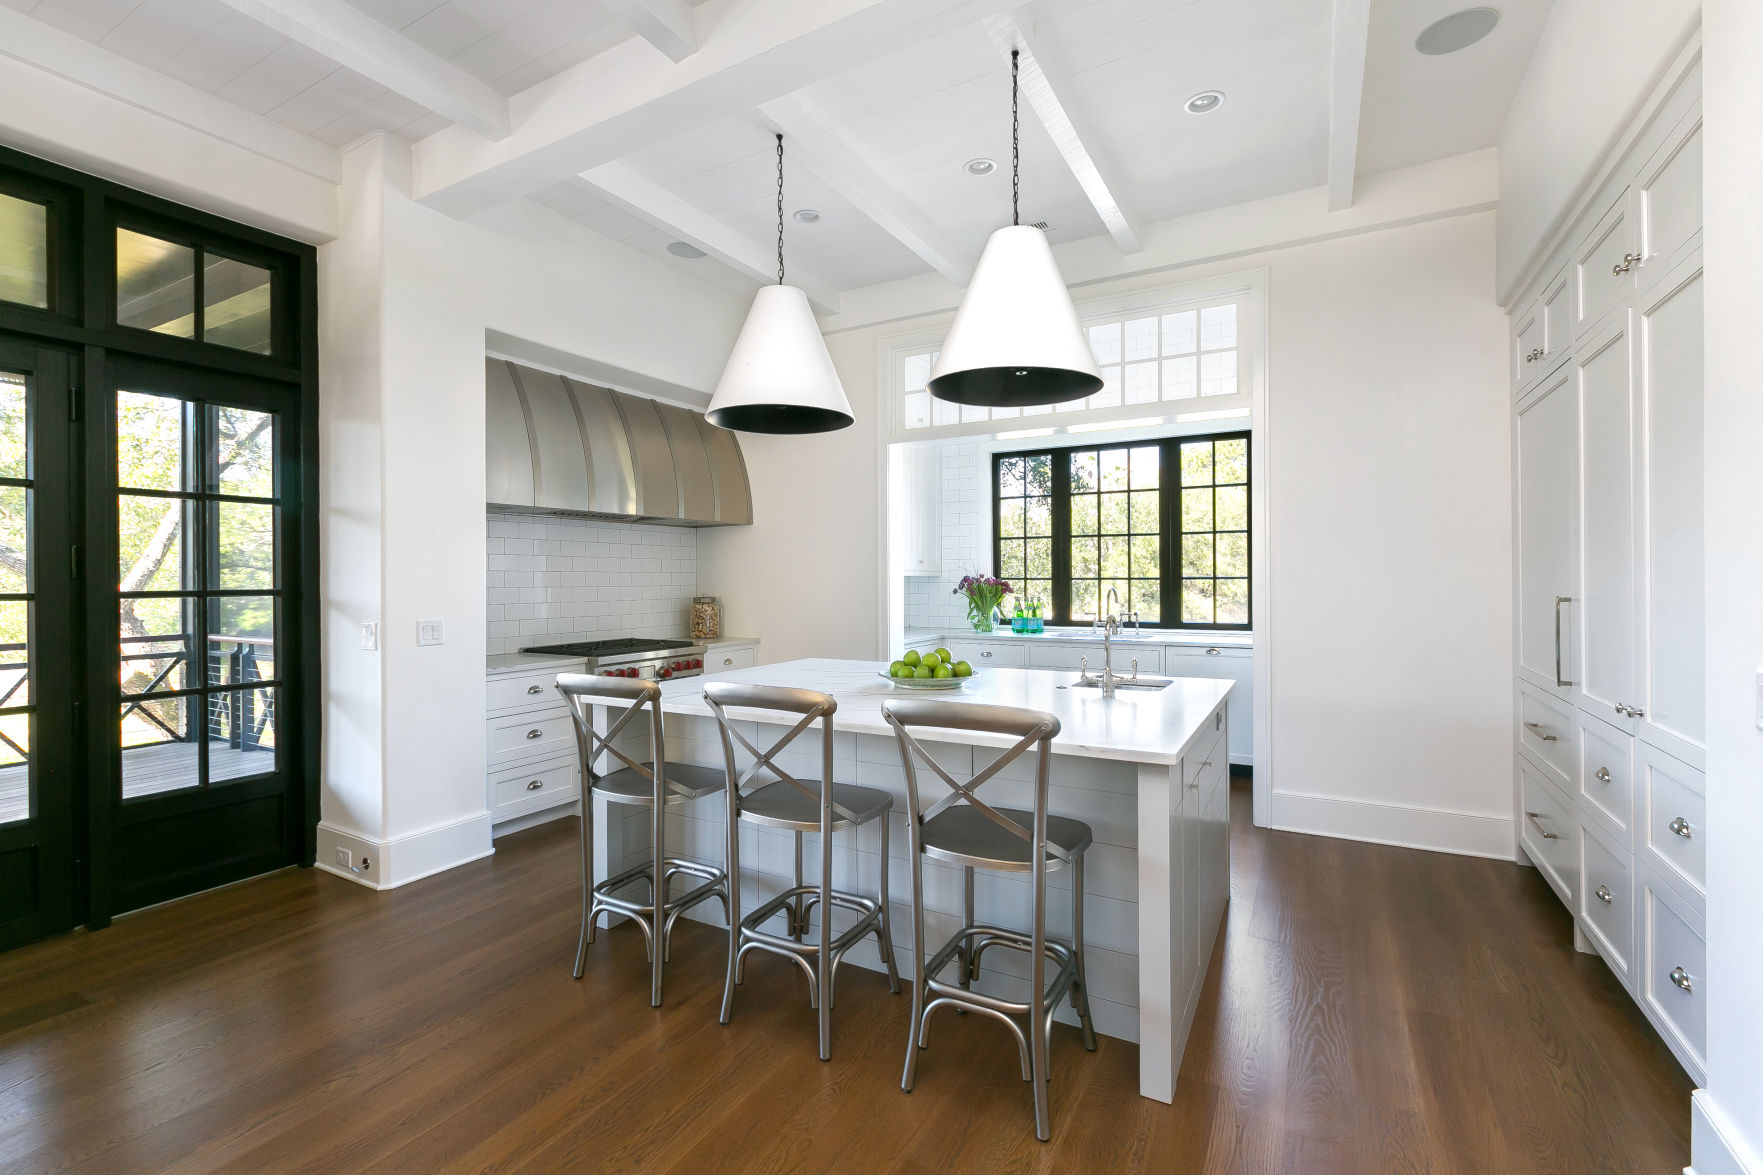 Carolina Lanterns Designed The Lighting For This House On Claret Way. The  Company Will Be One Of 100 Vendors At The Yearly Charleston Home + Design  Show At ...